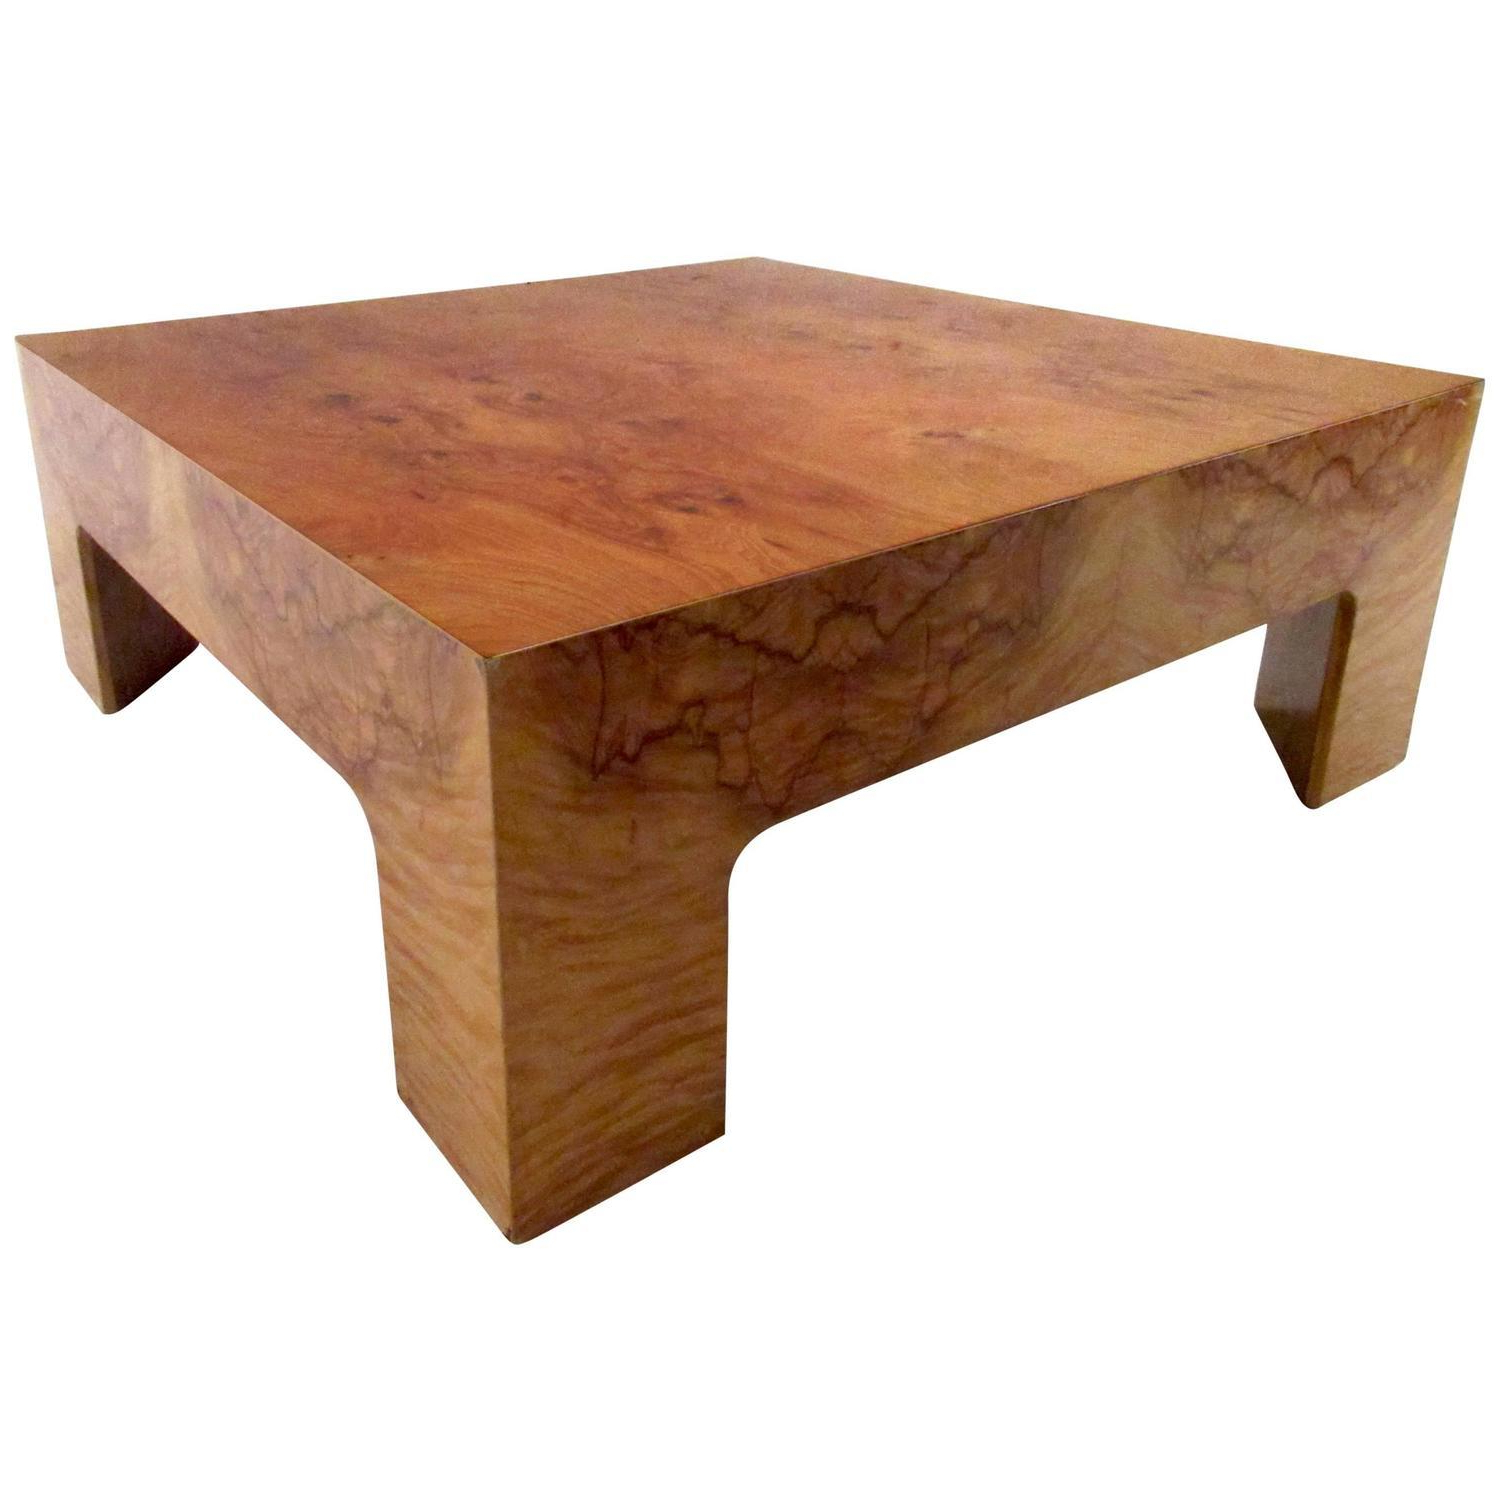 Well Known Burlwood Coffee Table Intended For Oslo Burl Wood Veneer Coffee Tables (View 13 of 20)